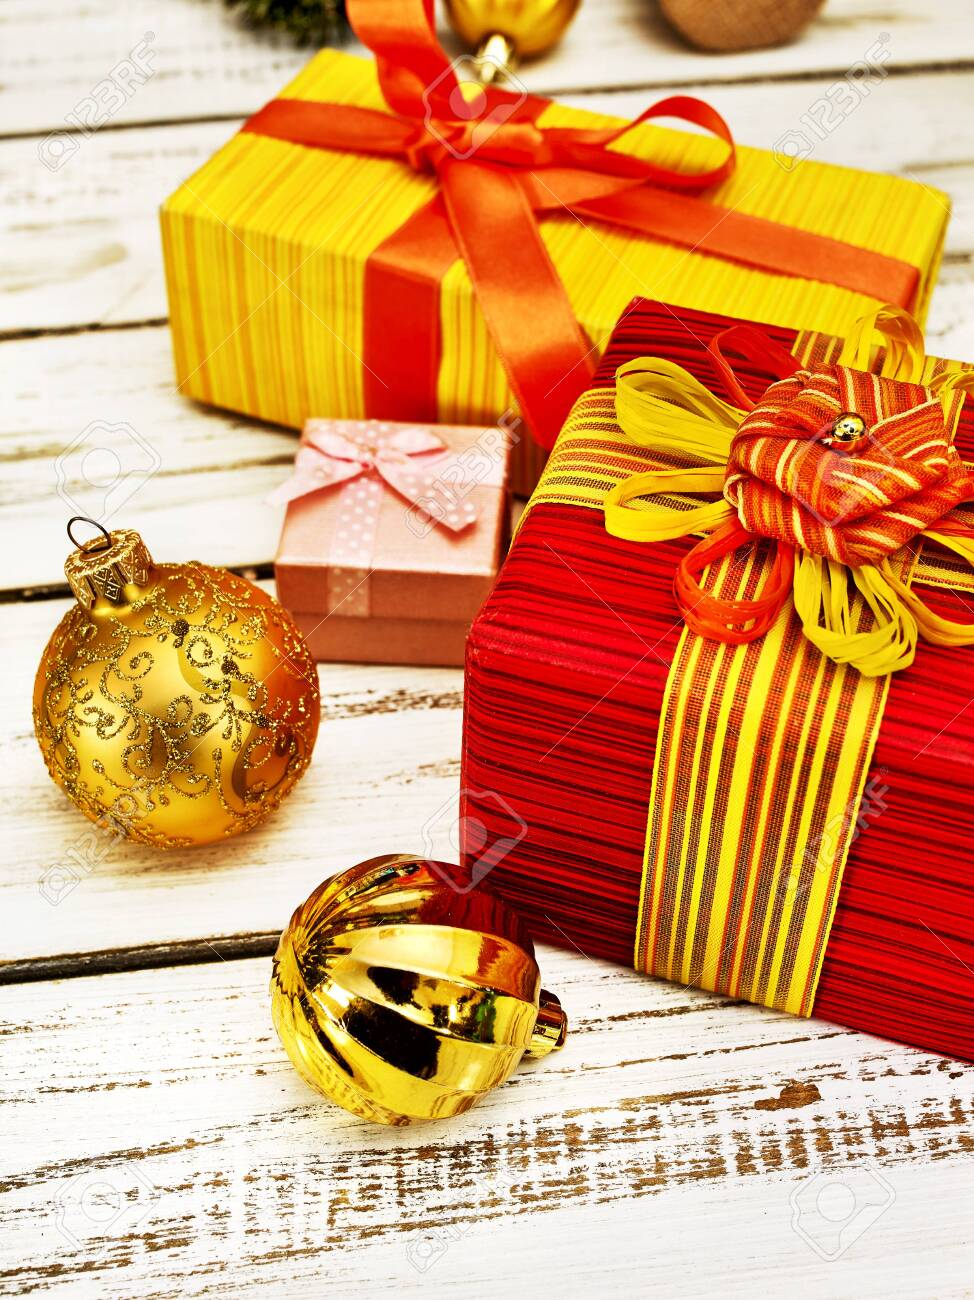 Christmas gift box , Xmas decorations and balls ornaments on white wooden table. Vertical frame . - 134846524